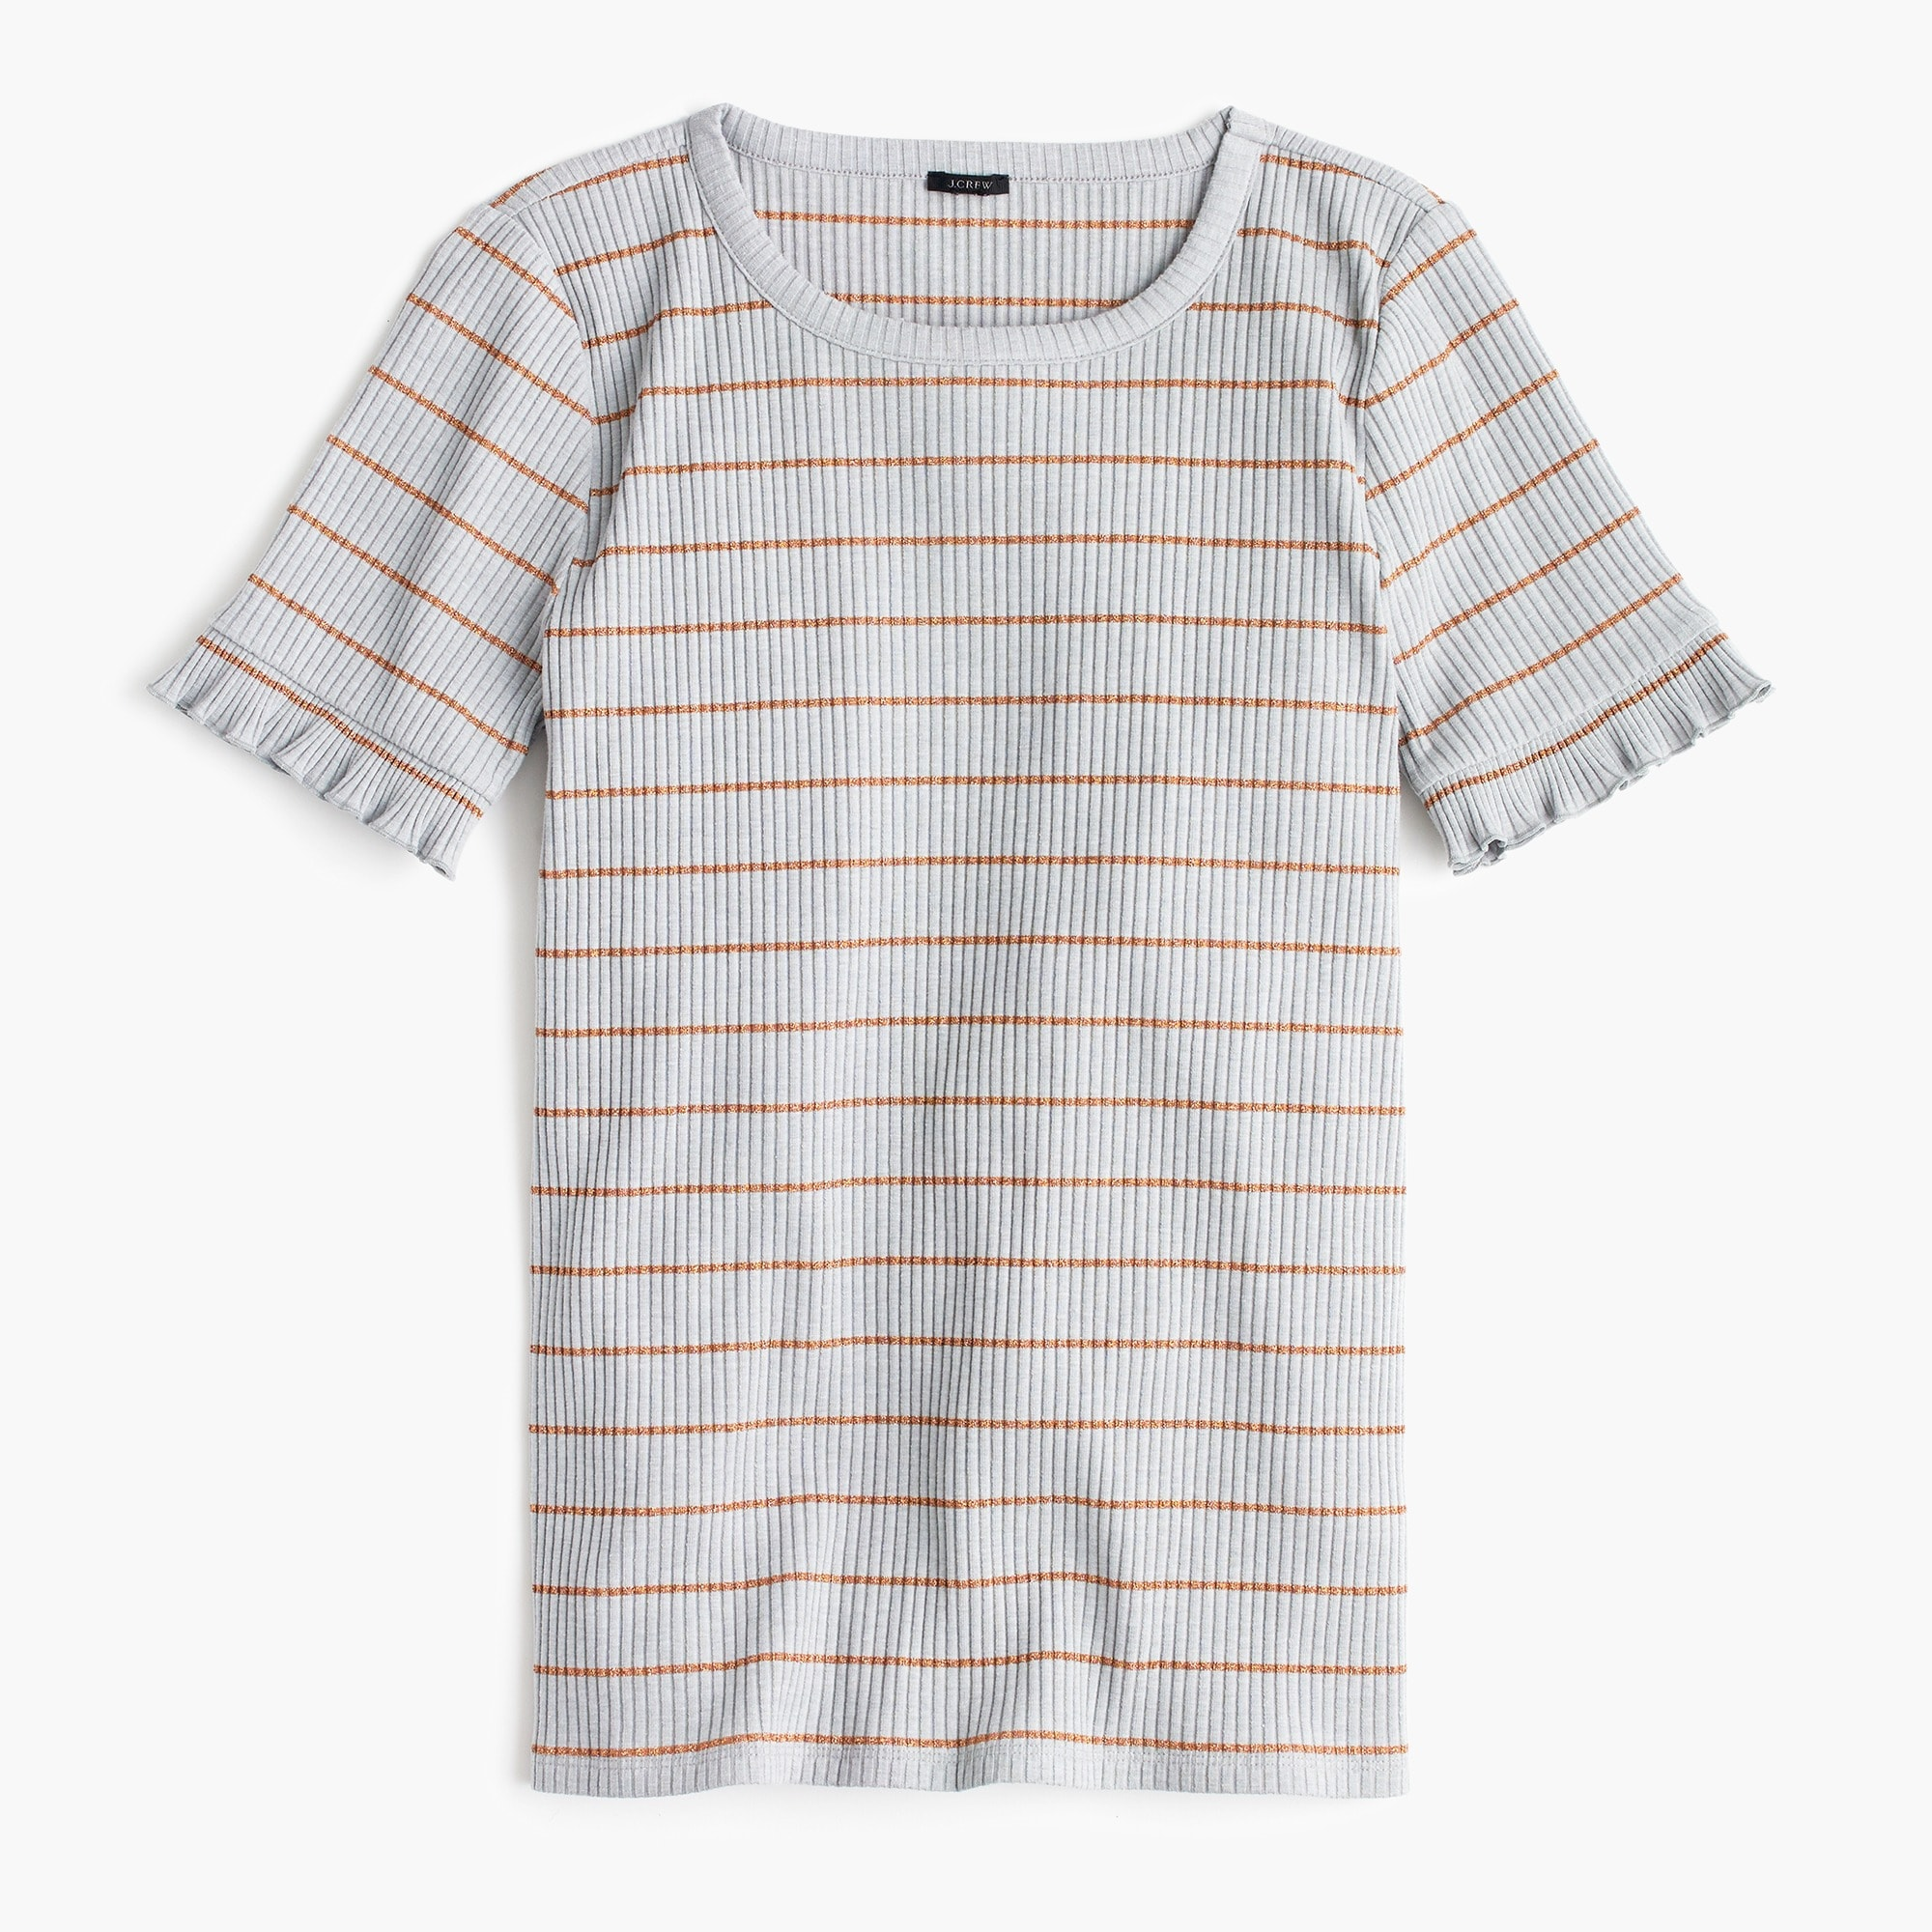 Image 1 for Ribbed striped T-shirt with ruffled sleeves